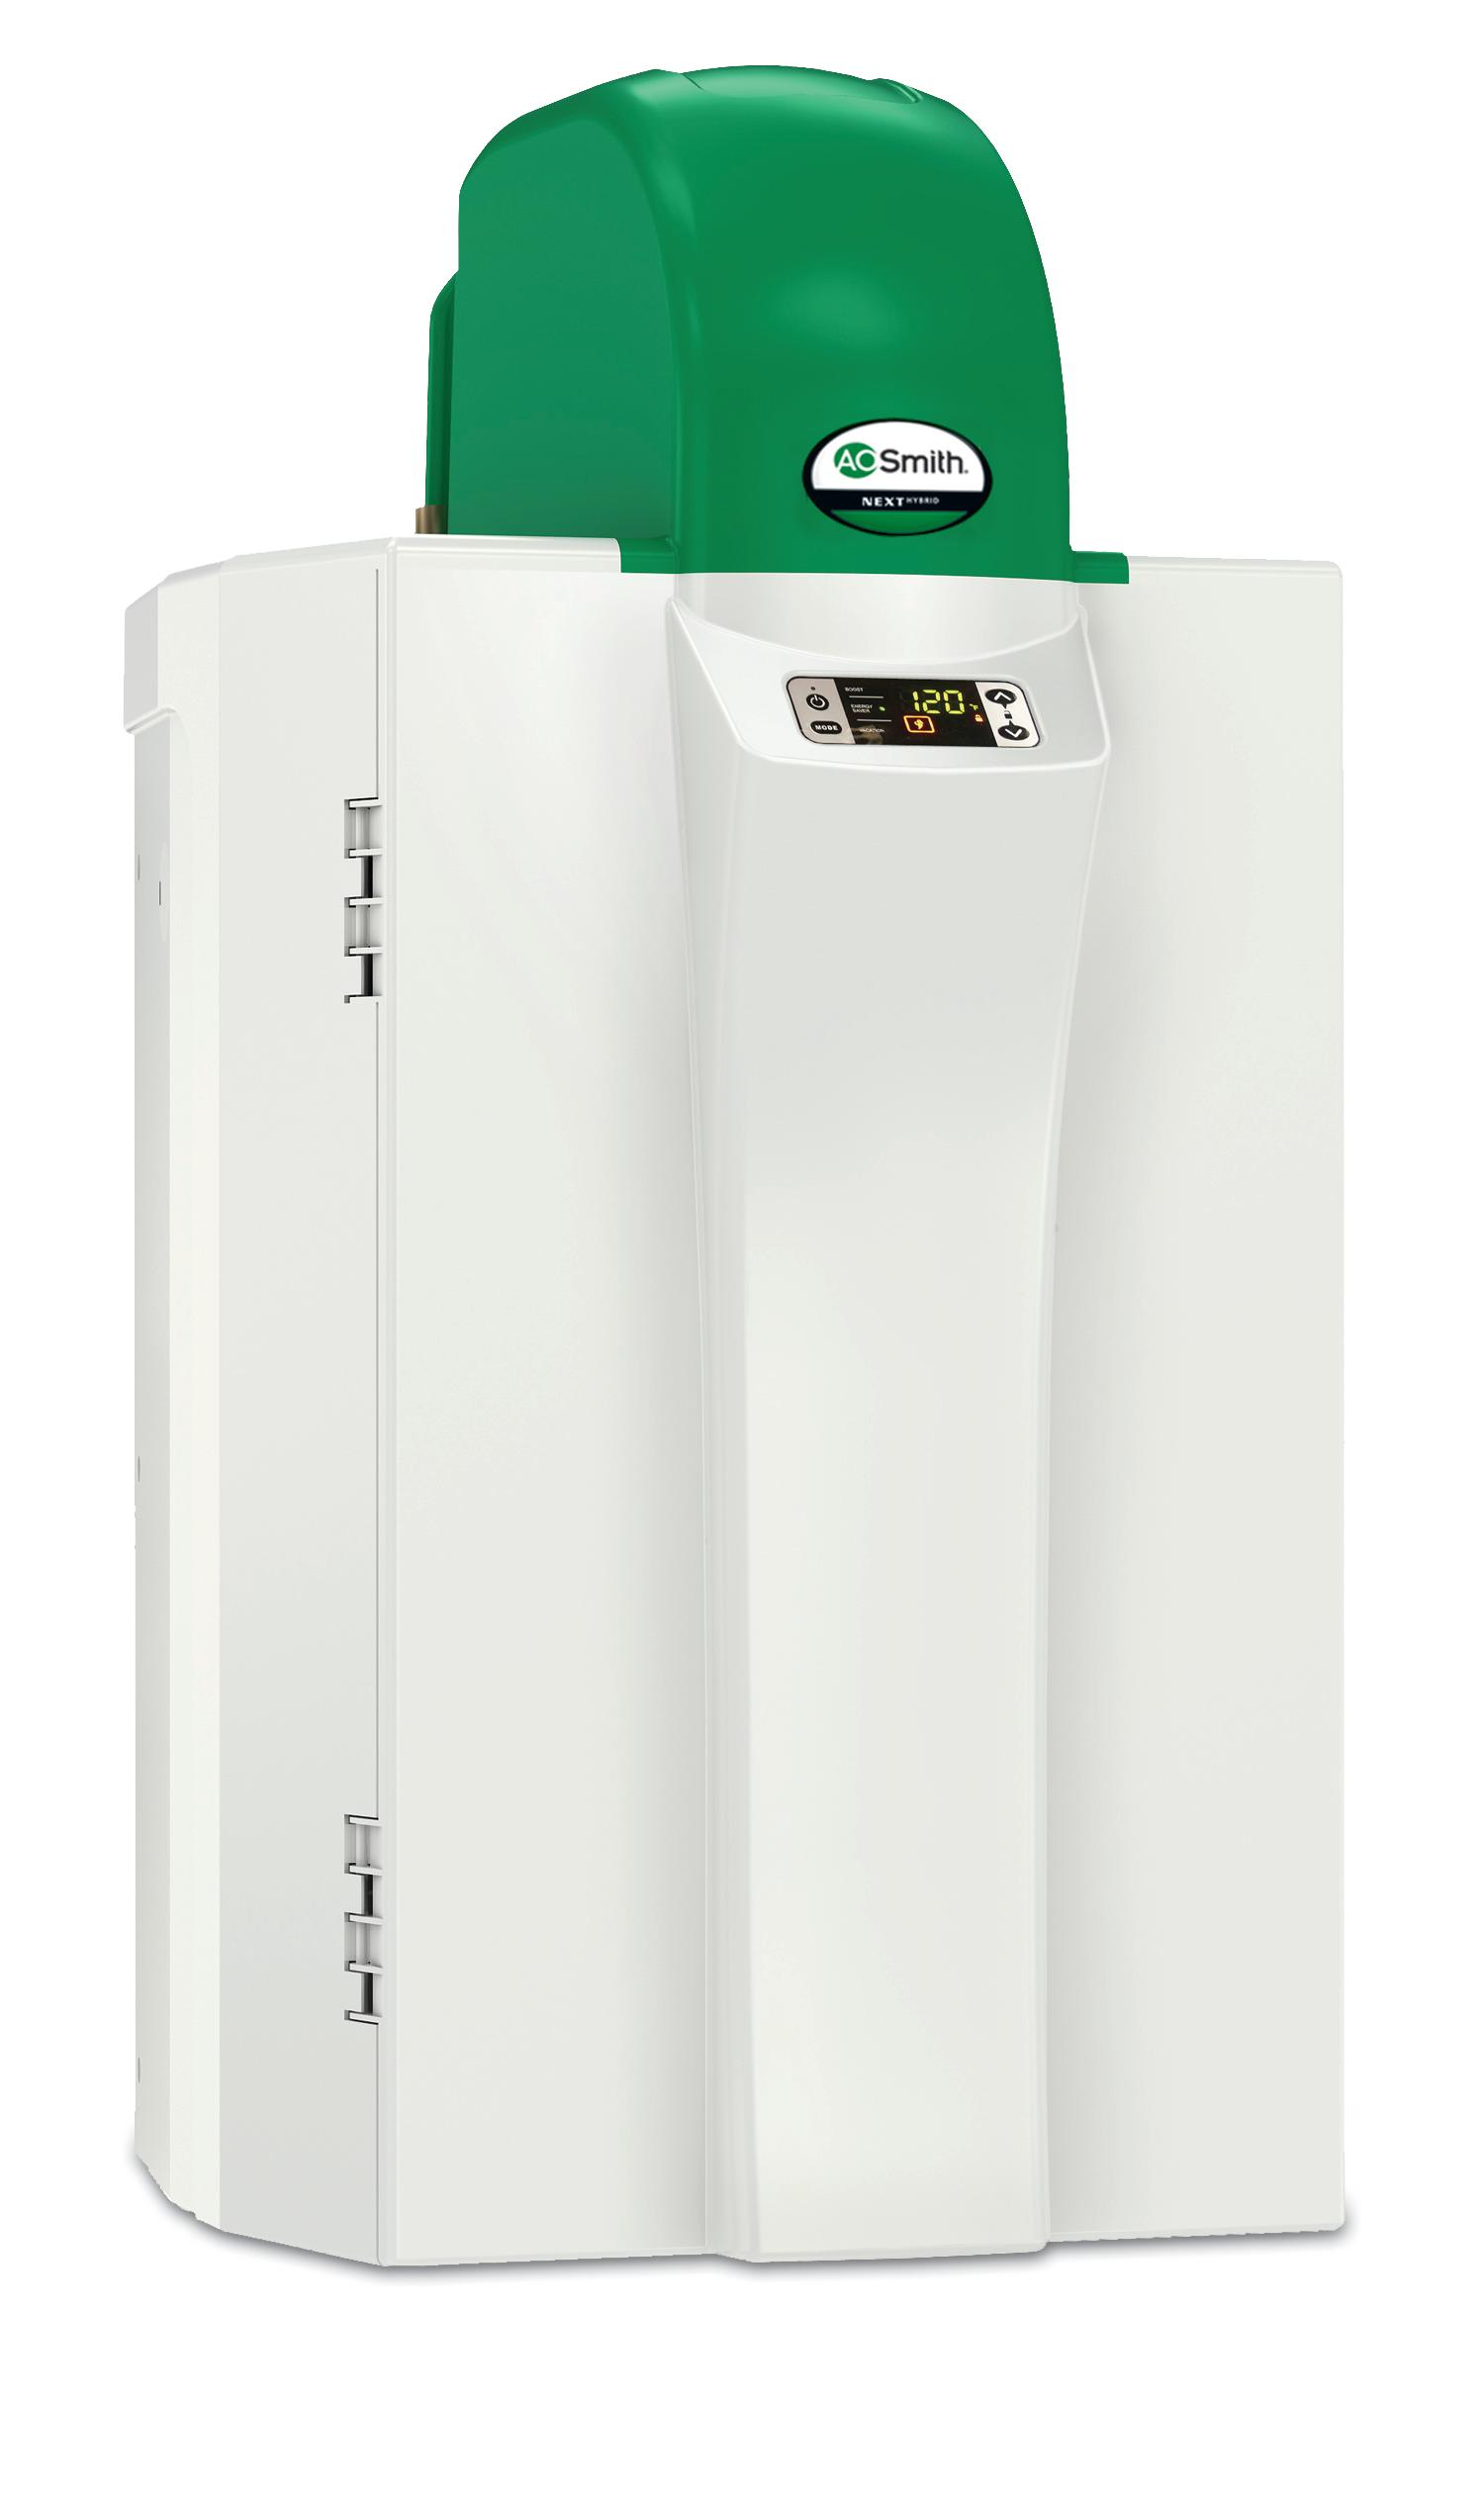 A O Smith Next Hybrid High Efficiency Gas Water Heater